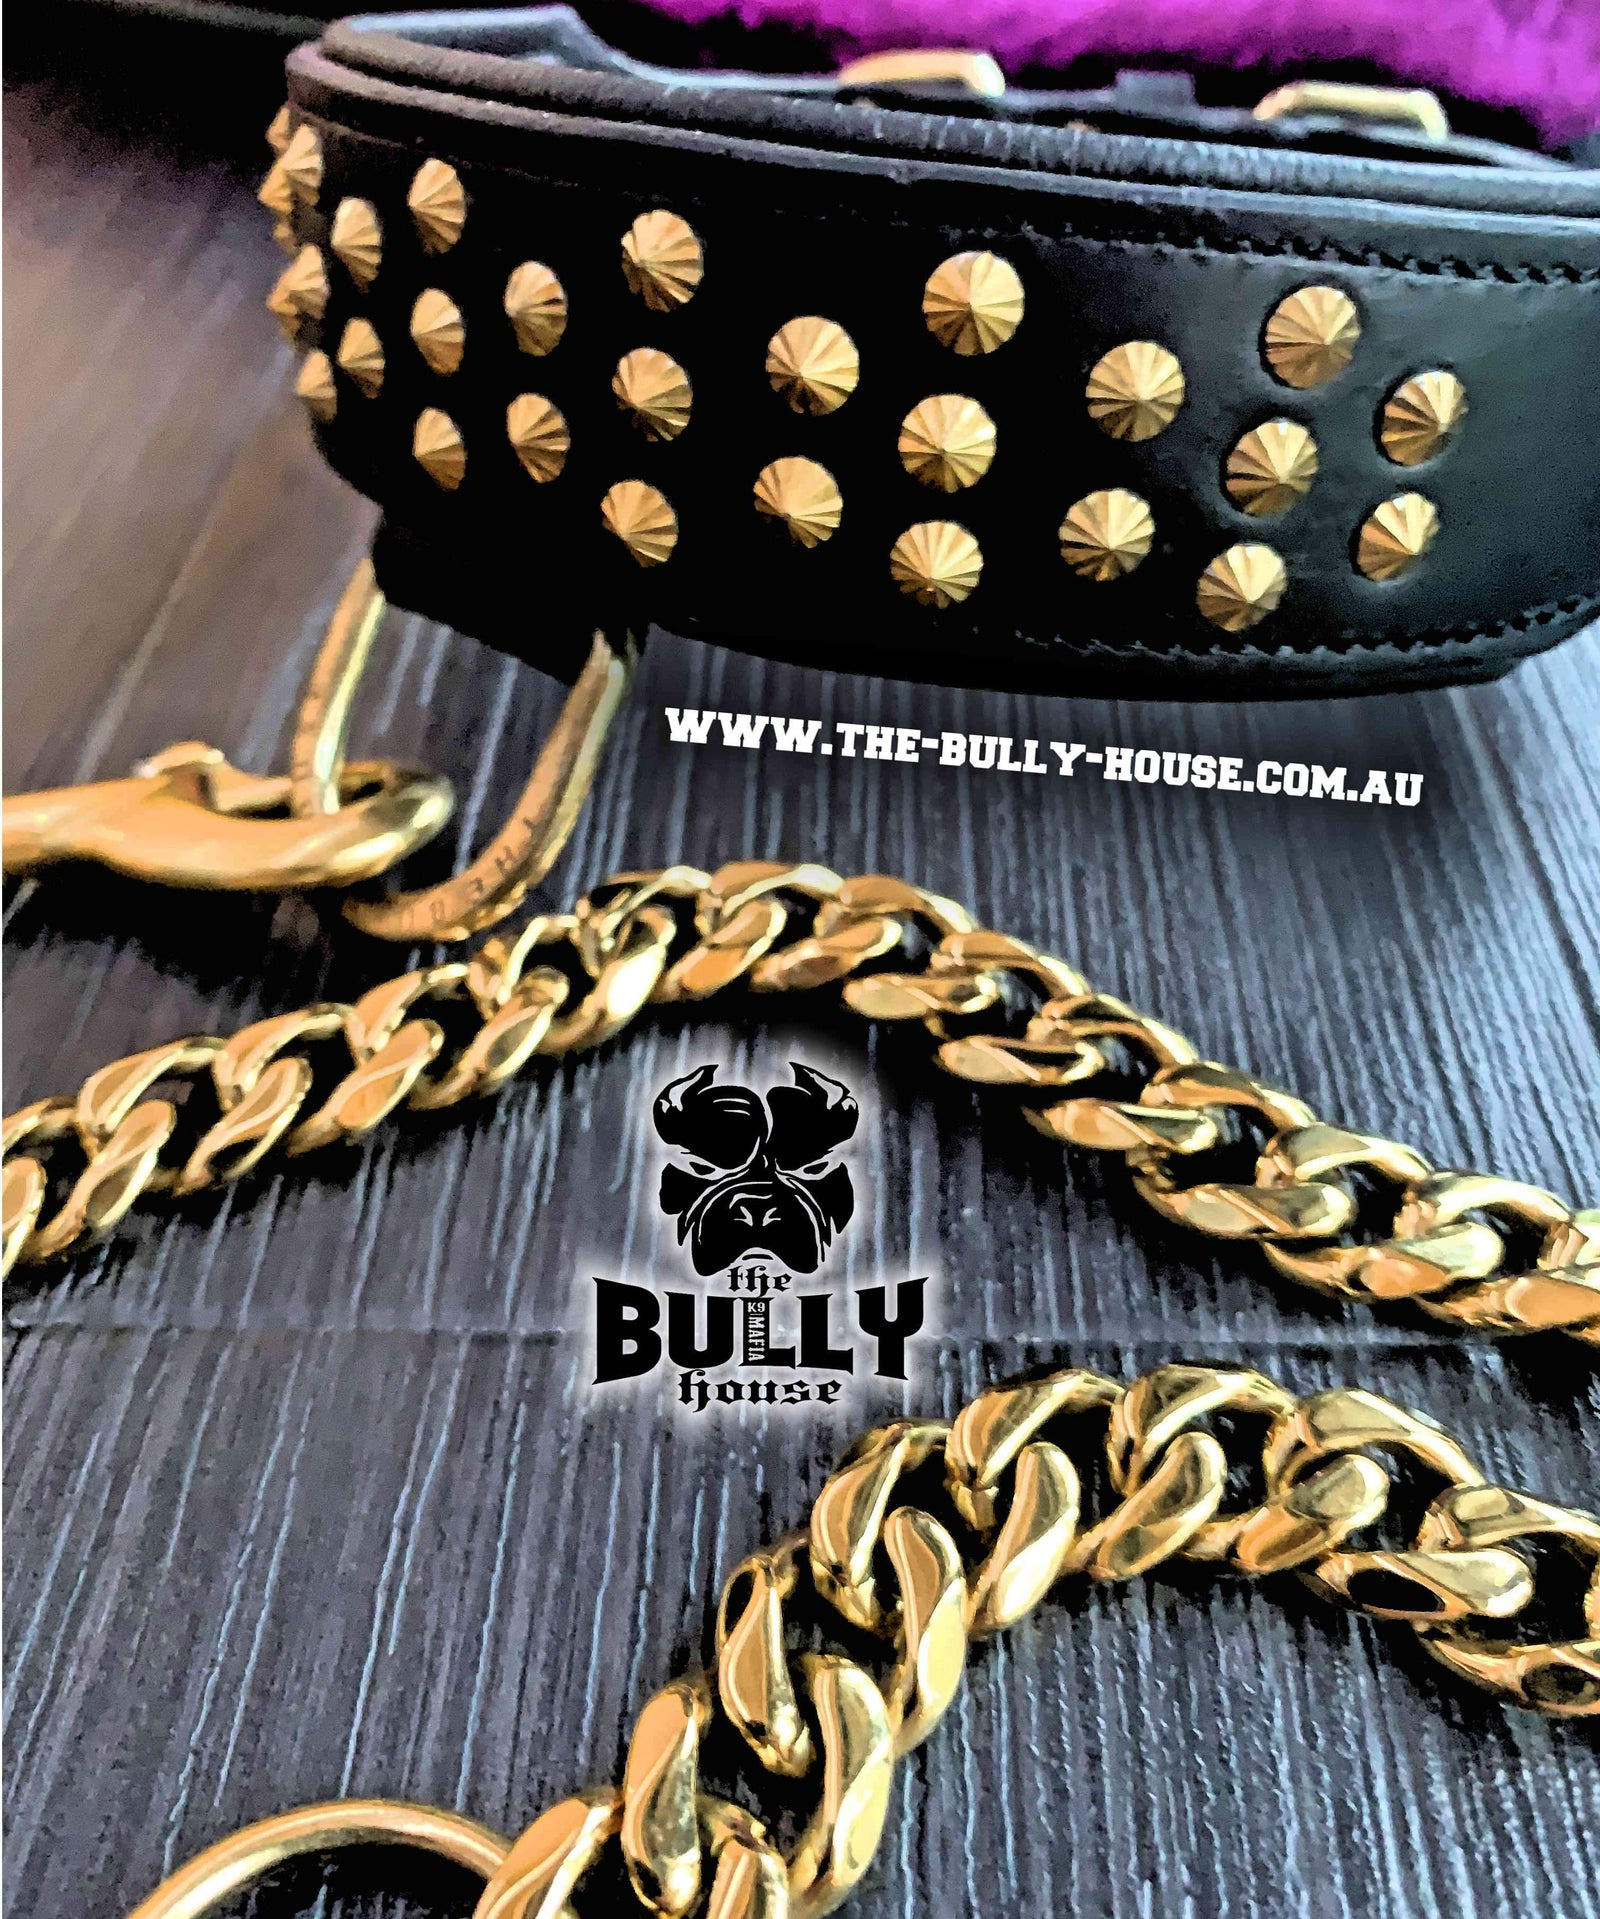 MINI TITAN - Black and Gold - Small Breed and Puppy - FULL Leather